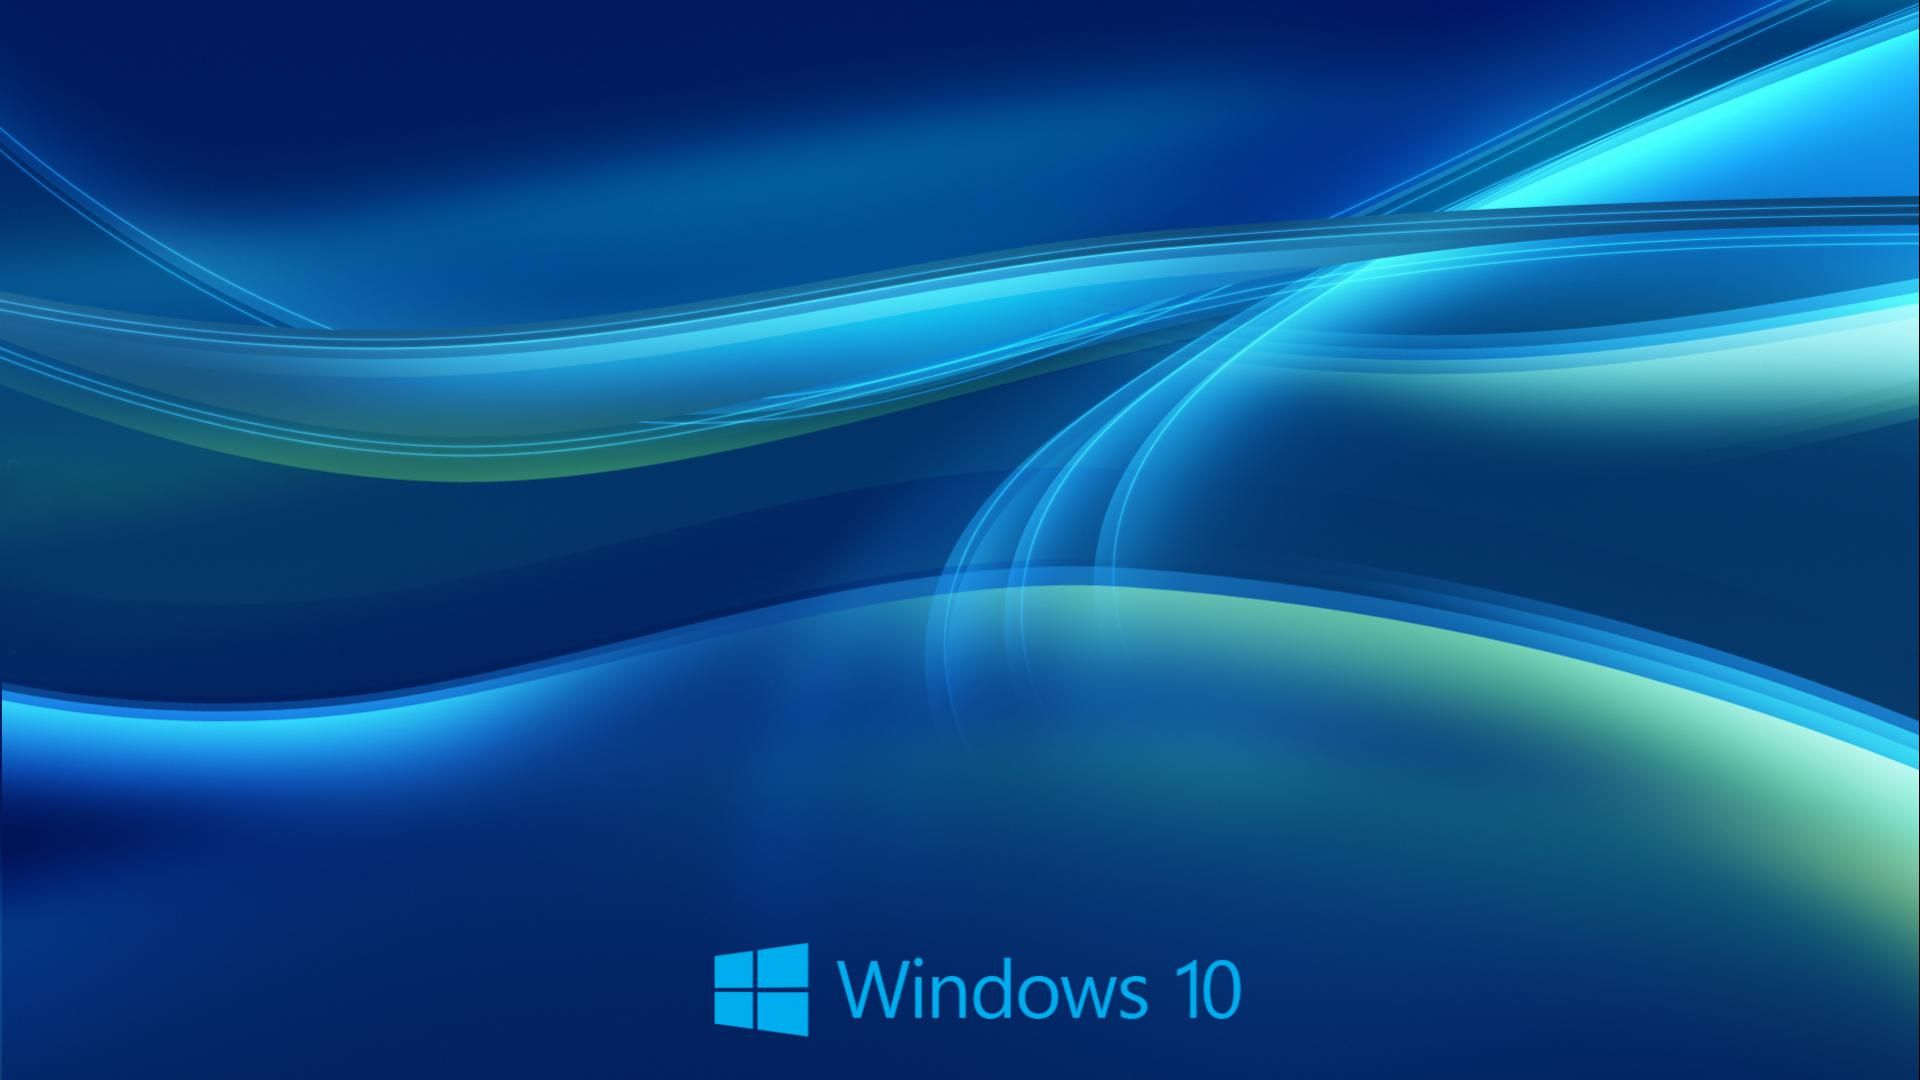 Windows 10 HD Wallpaper 1920x1080 - WallpaperSafari | Windows 10 ...